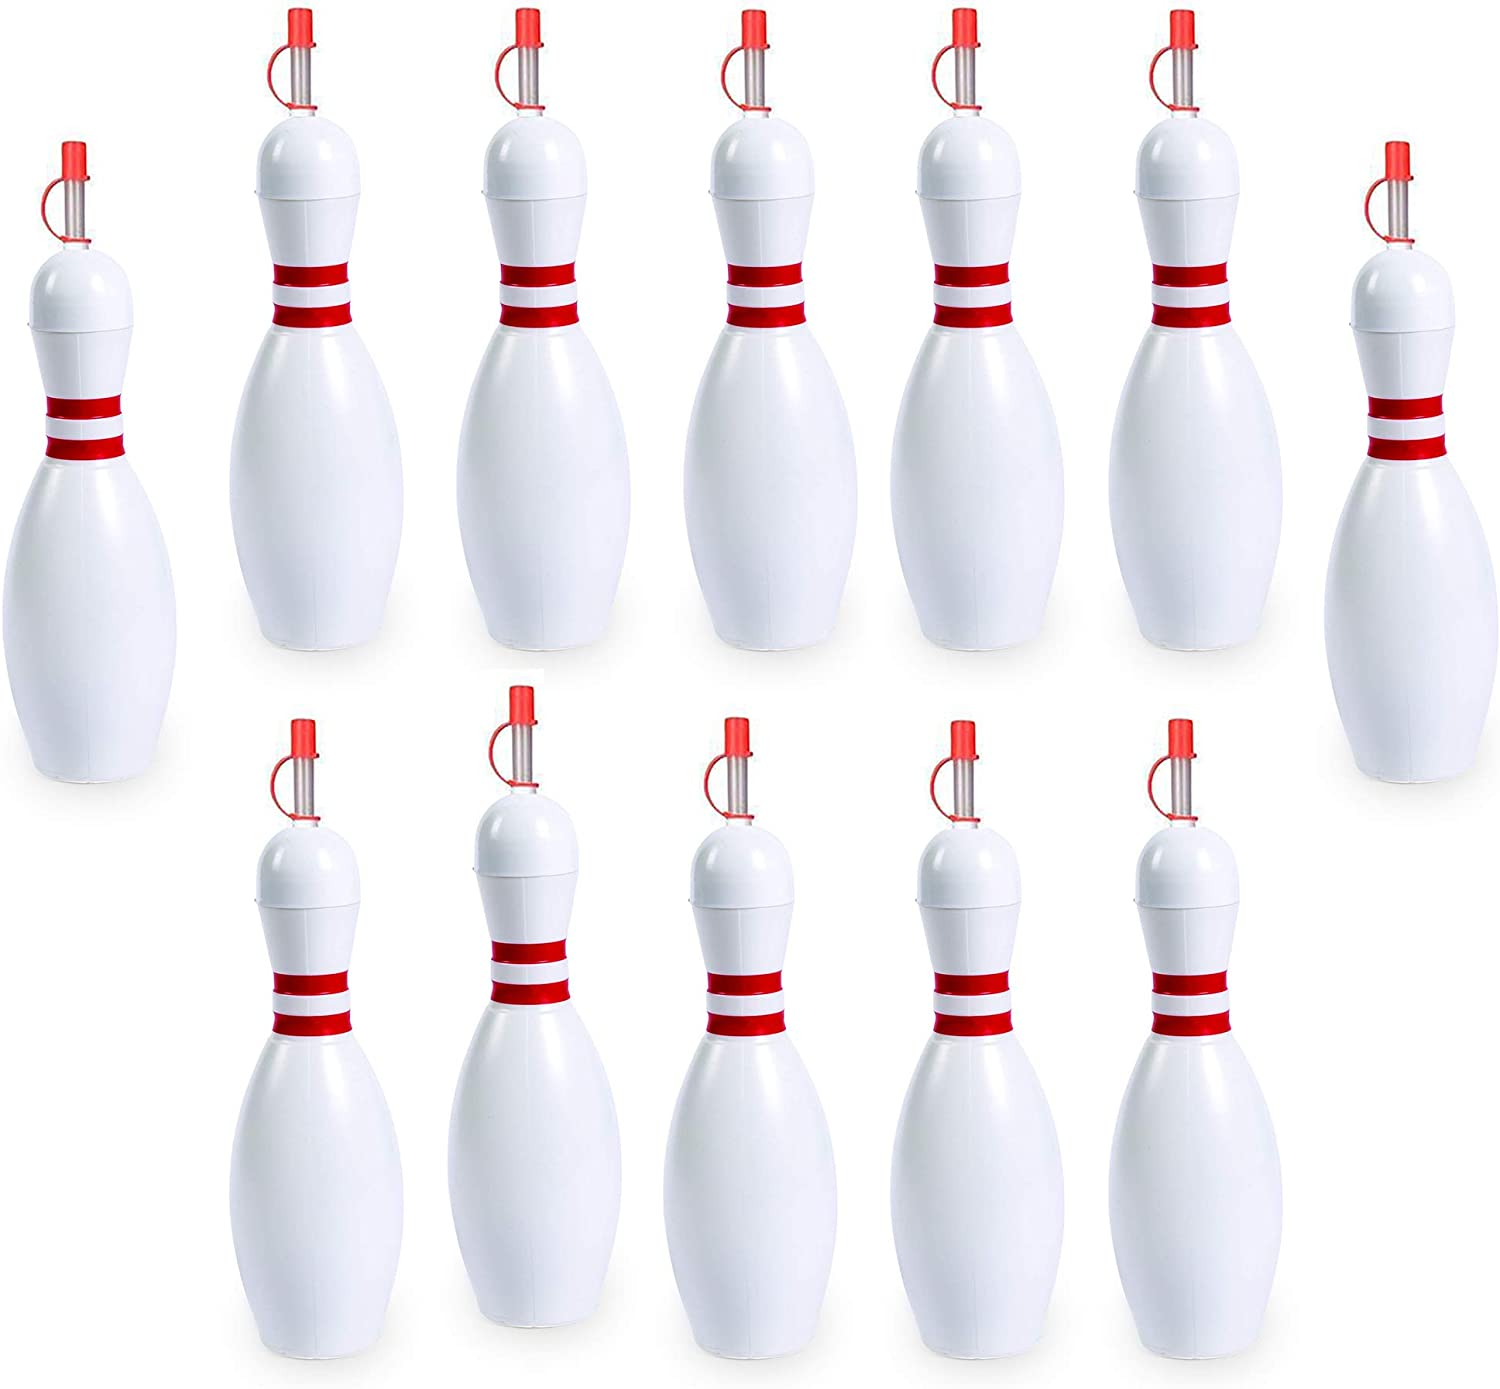 Bowling Pin Water Bottle Cup [12 Pack] Holds 24 Ounces, Great Birthday Party Favor, Summer Carnival Supplies, Blowing Pin Bottle, By 4E's Novelty